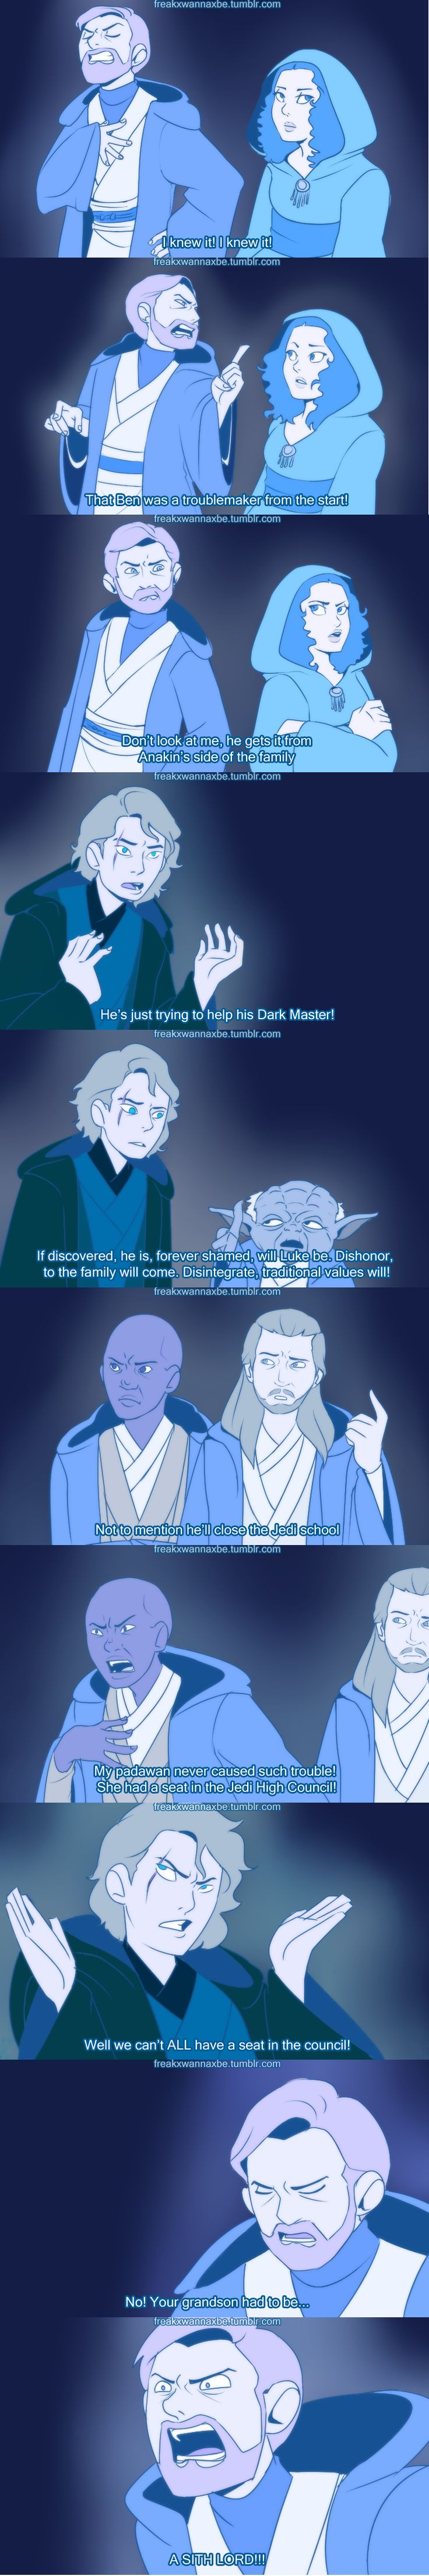 Star Wars ..HAHAHA (except for the part that padme is a force ghost...she wasn't a jedi)